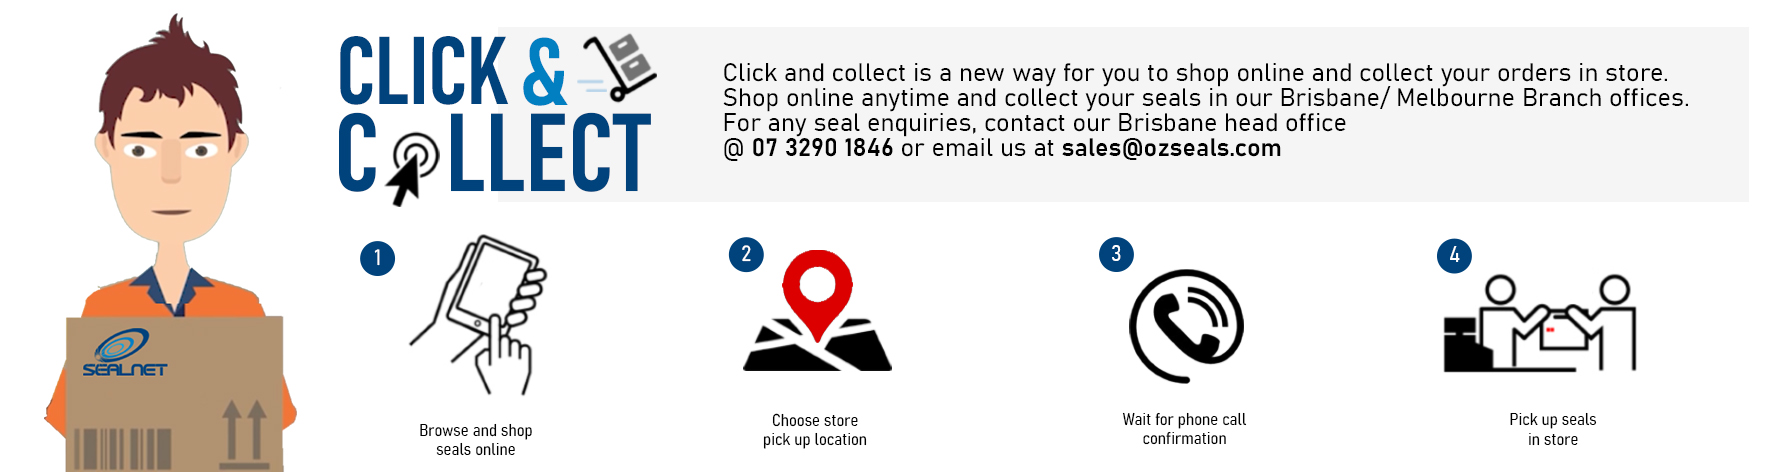 Sealnet Shop Click and Collect